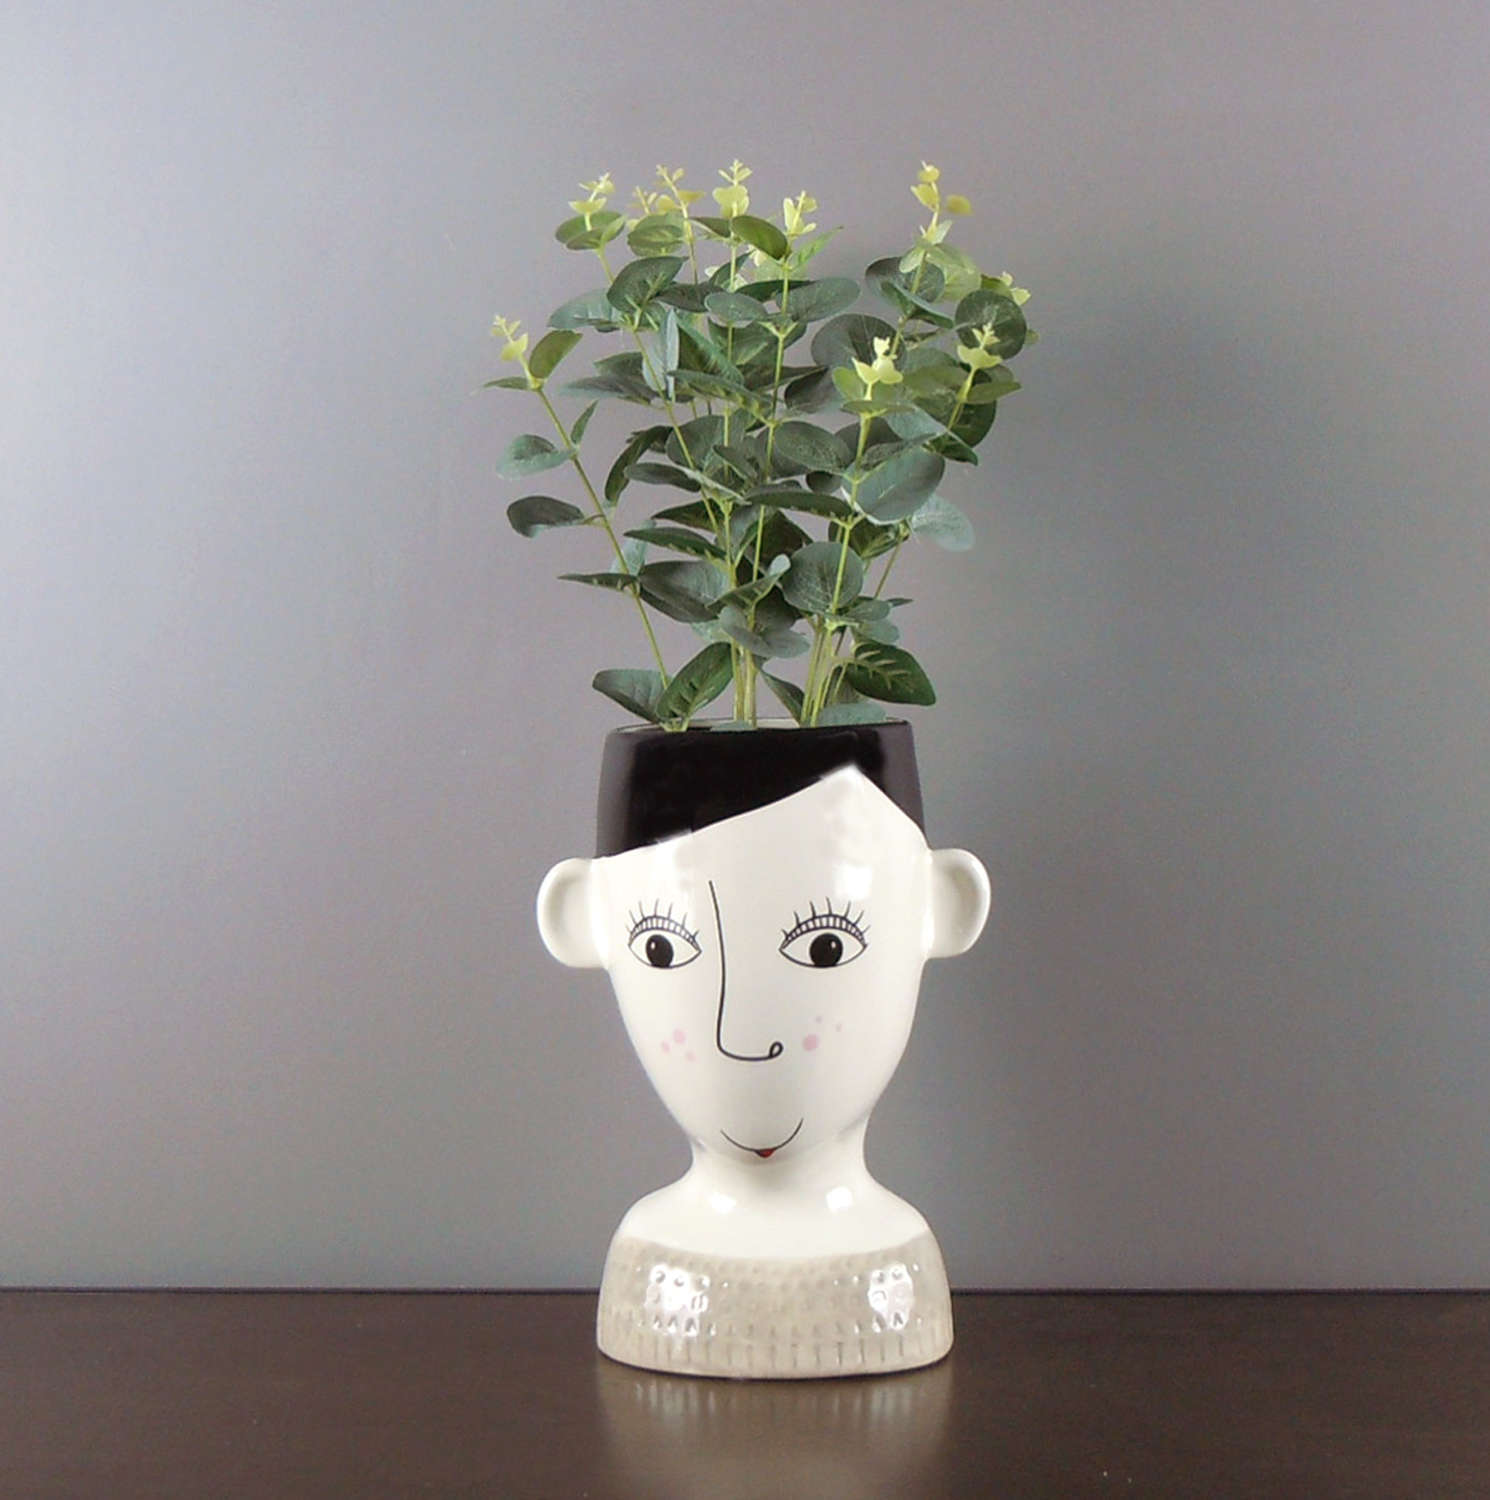 Ceramic Doodle Woman's face with freckles vase